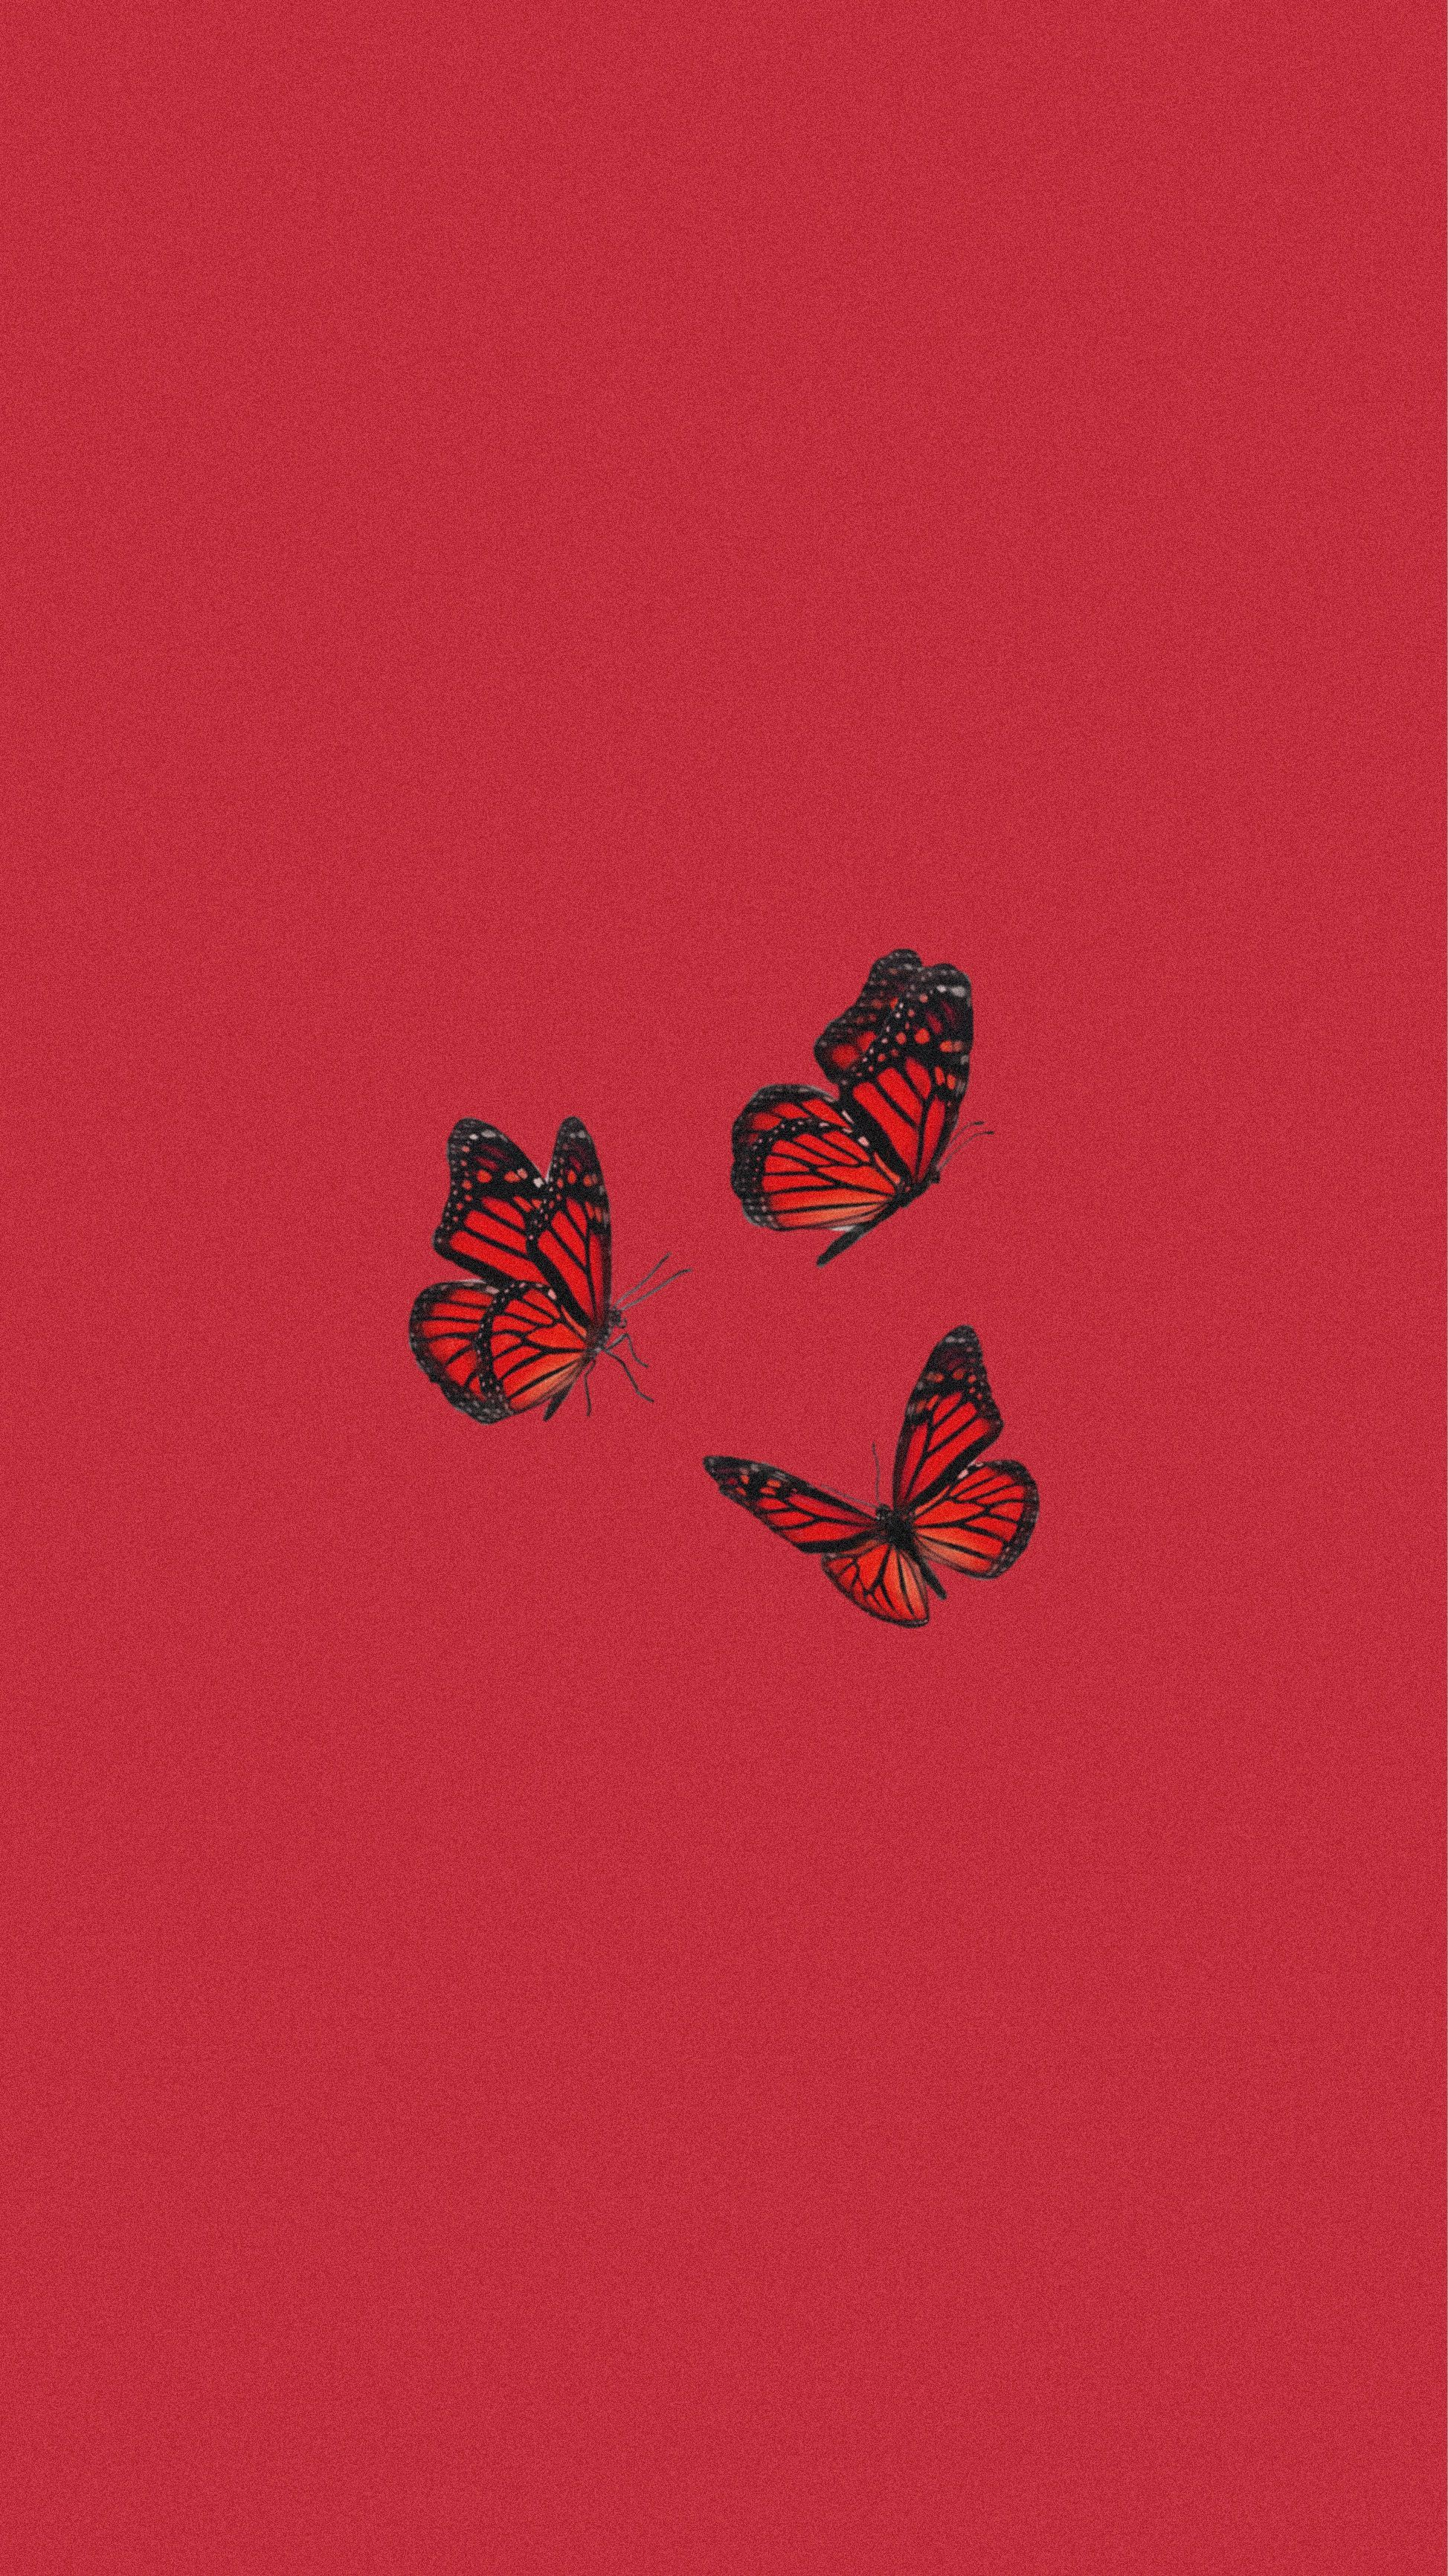 Cute Red Butterfly Wallpapers Top Free Cute Red Butterfly Backgrounds Wallpaperaccess